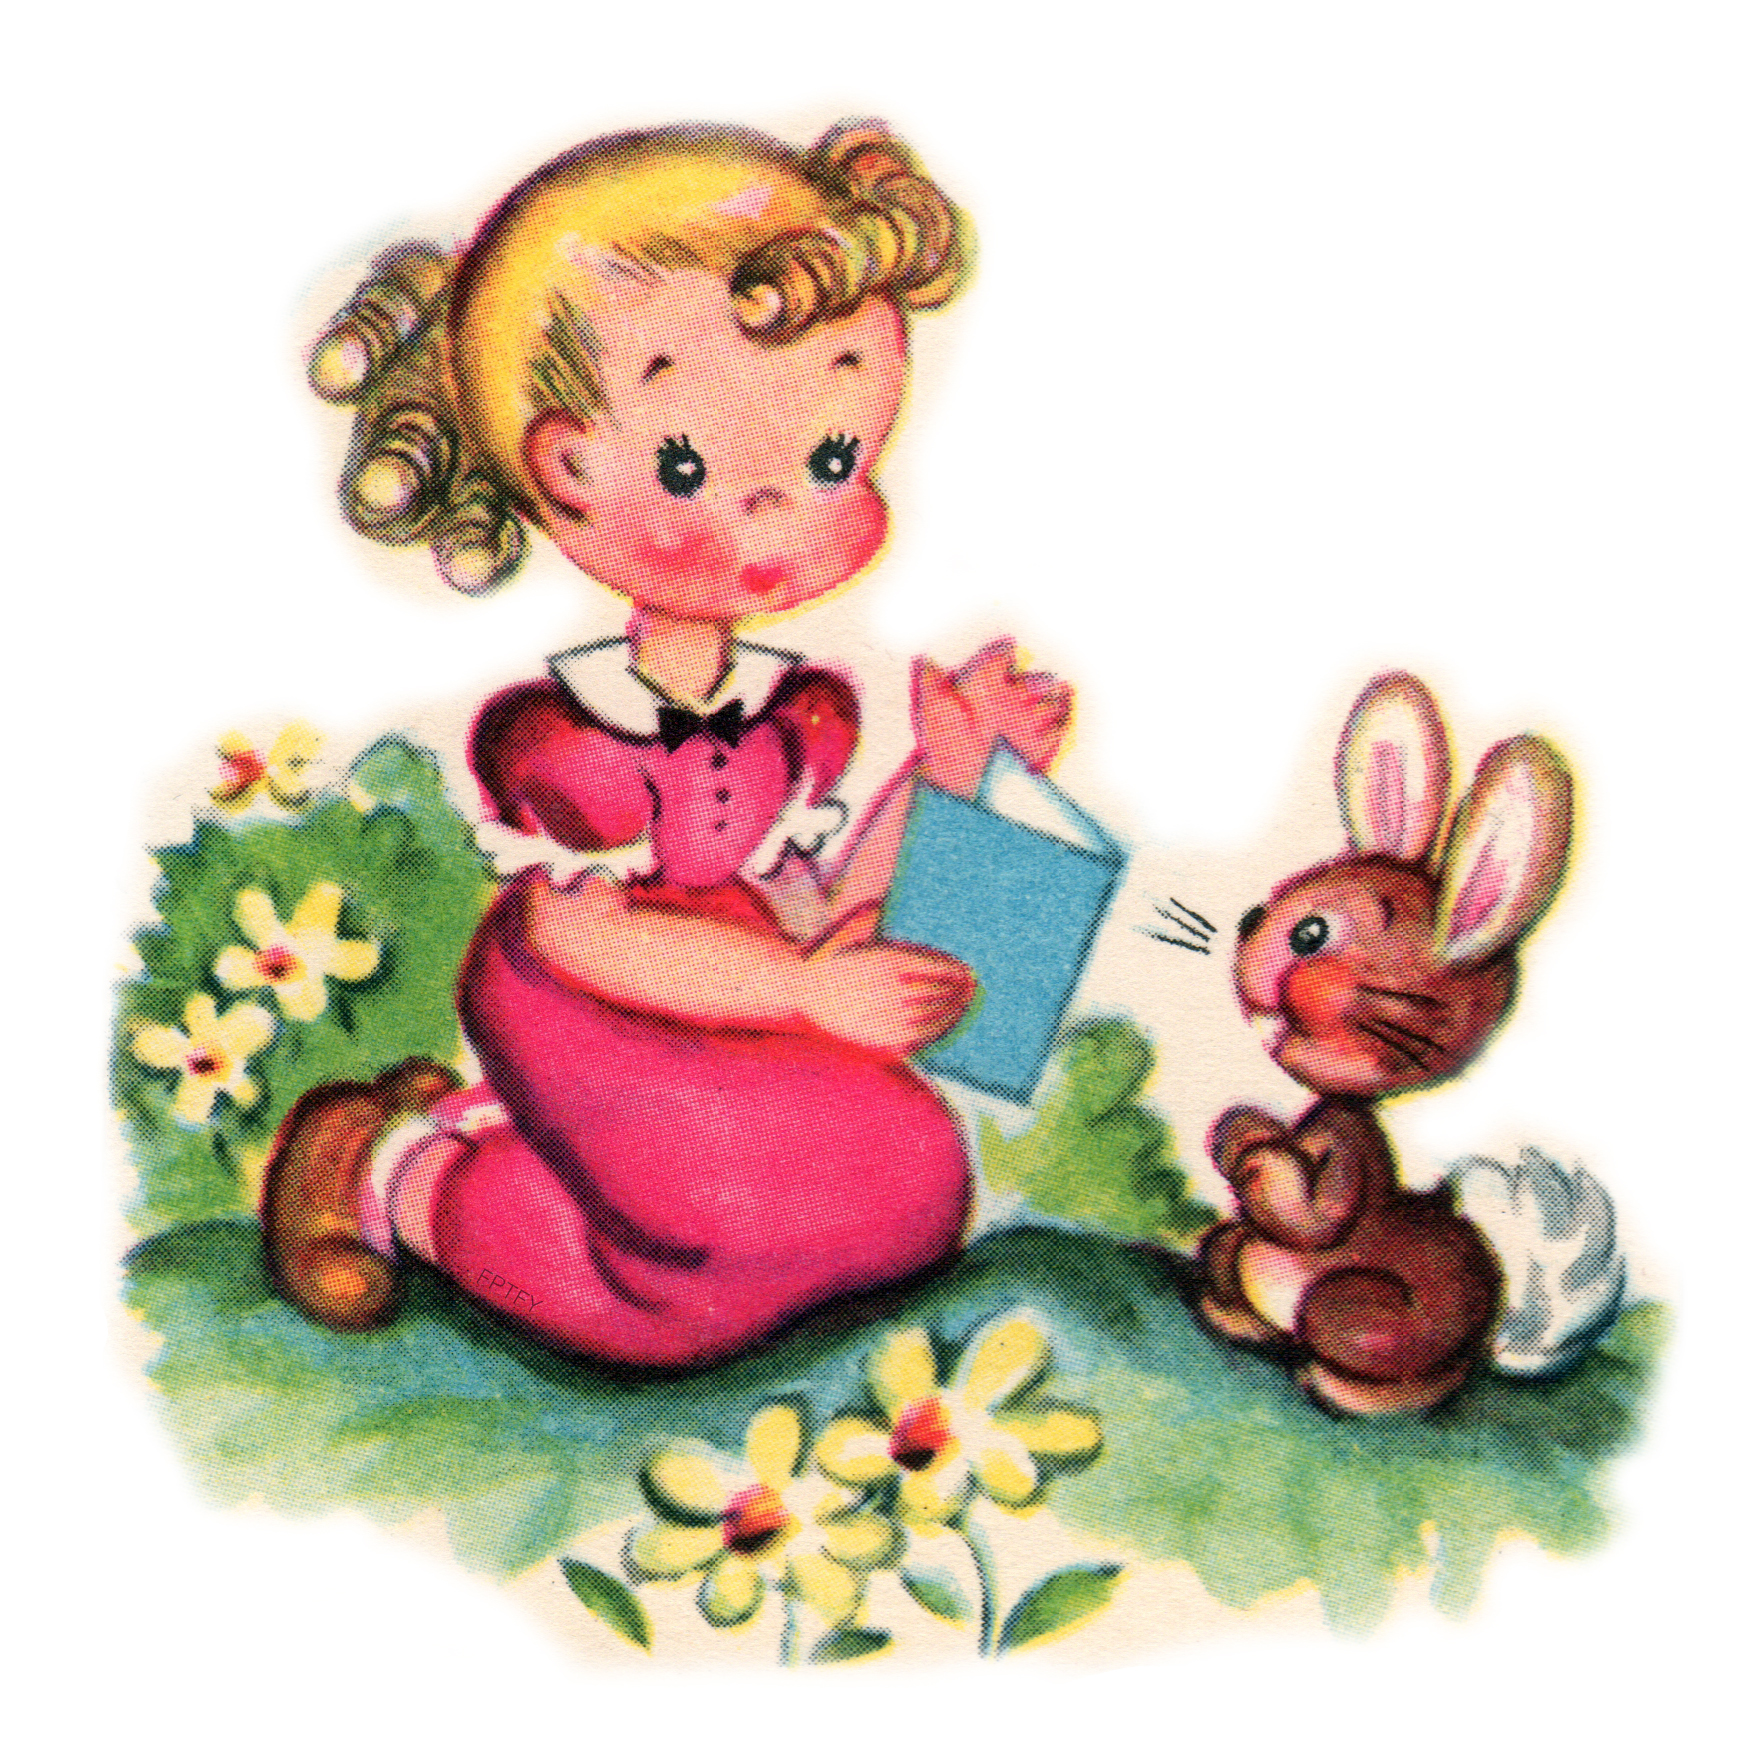 Free Vintage Clip Art: Pretty Little Girl And Her Pet